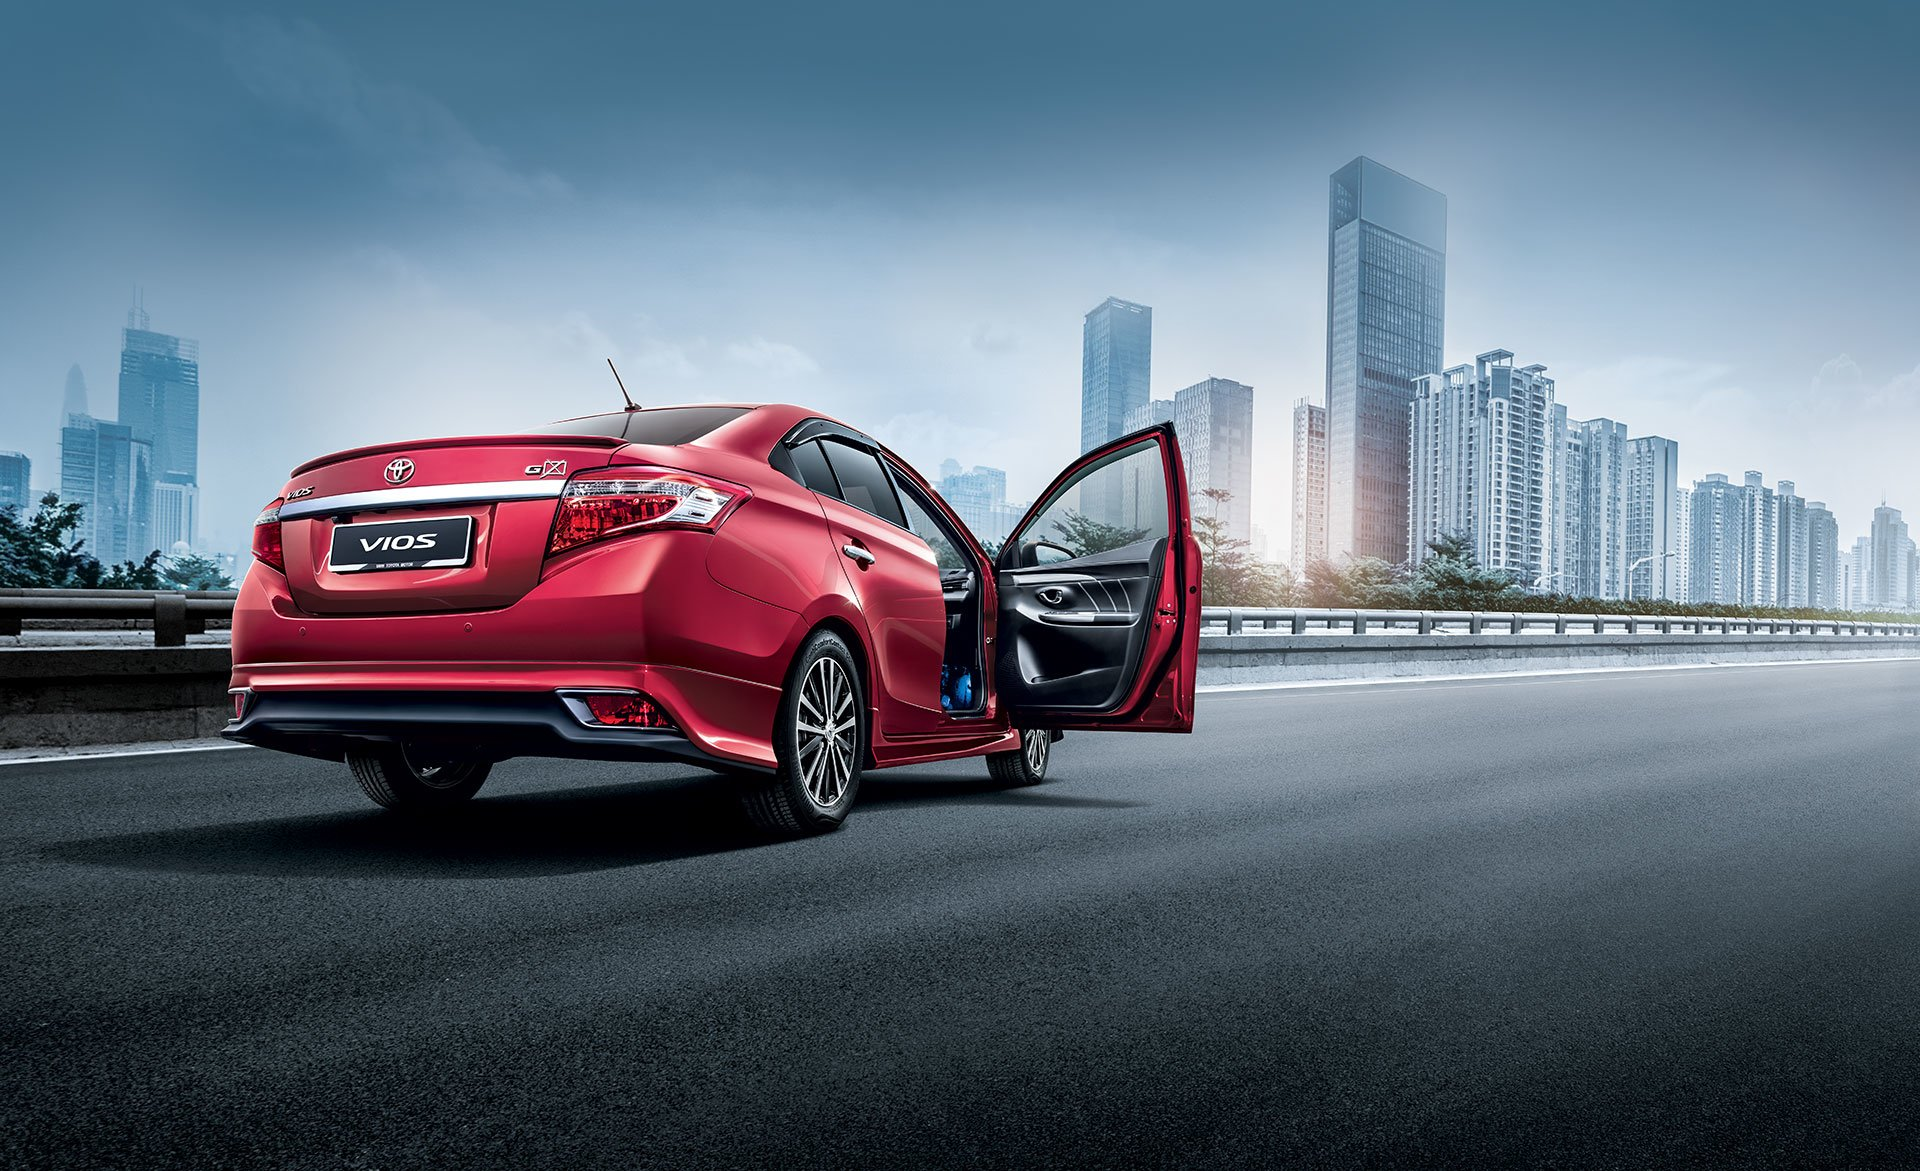 Toyota vios india launch in early 2018 expect honda city - Car key wallpaper ...